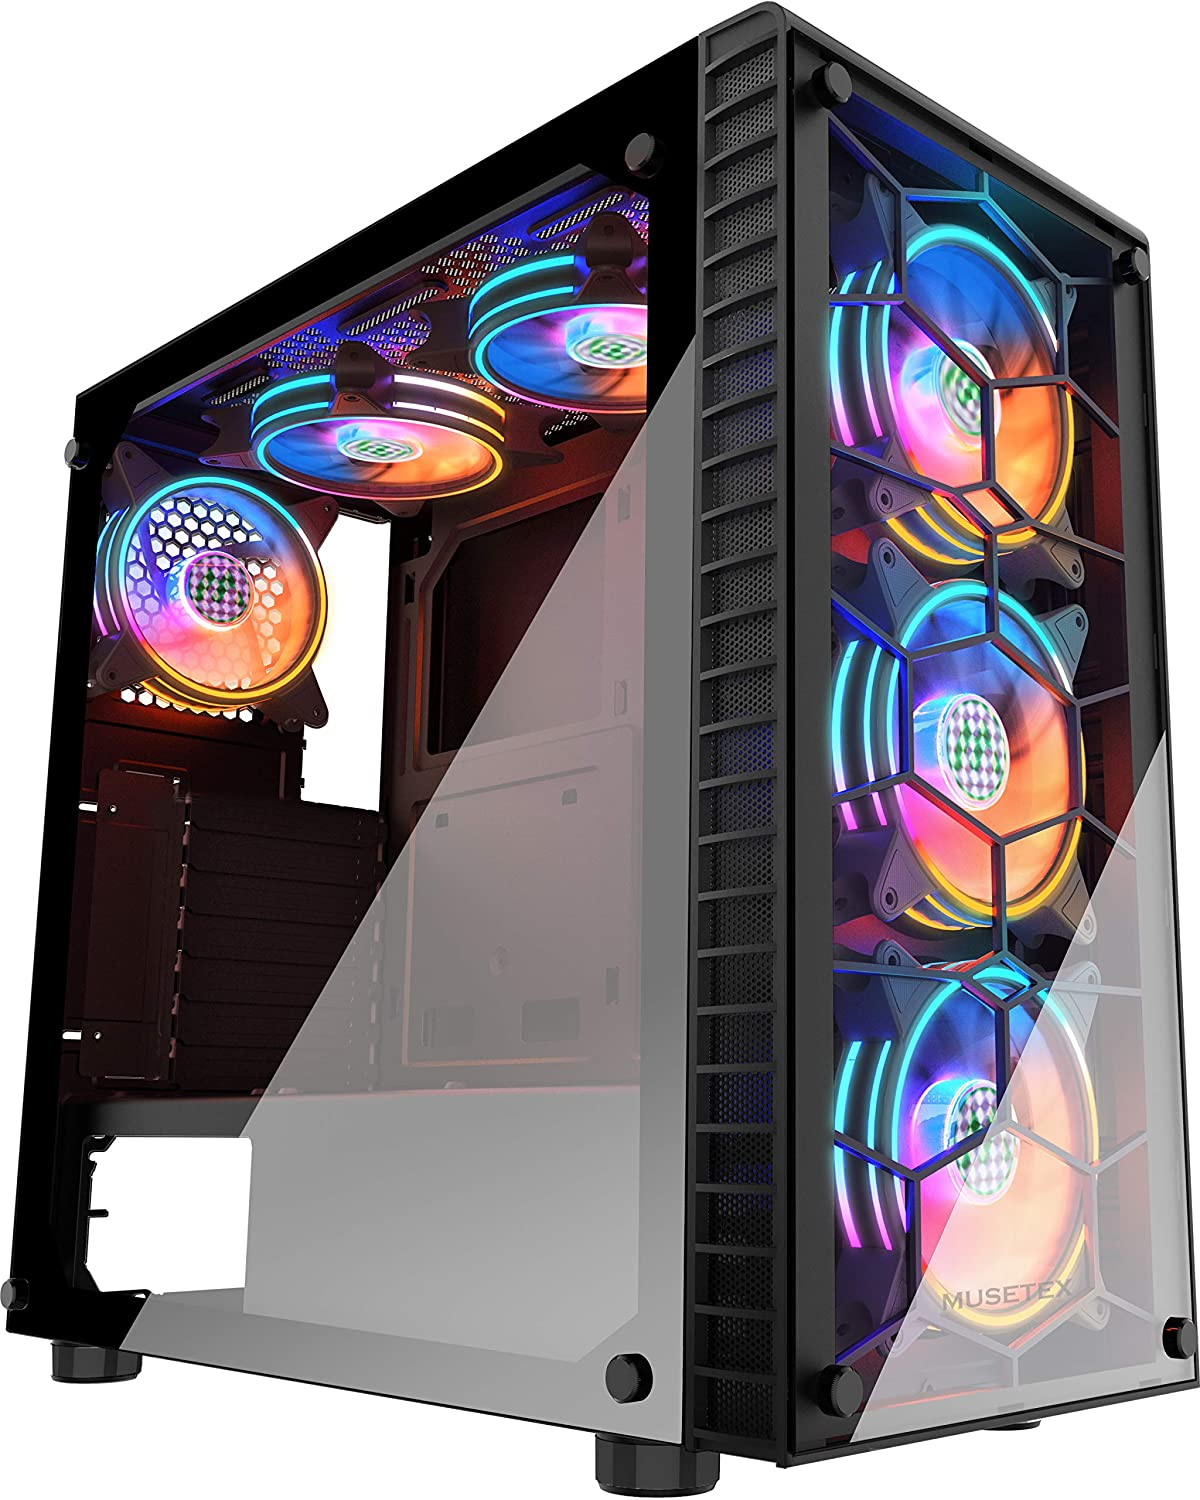 MUSETEX ATX PC case